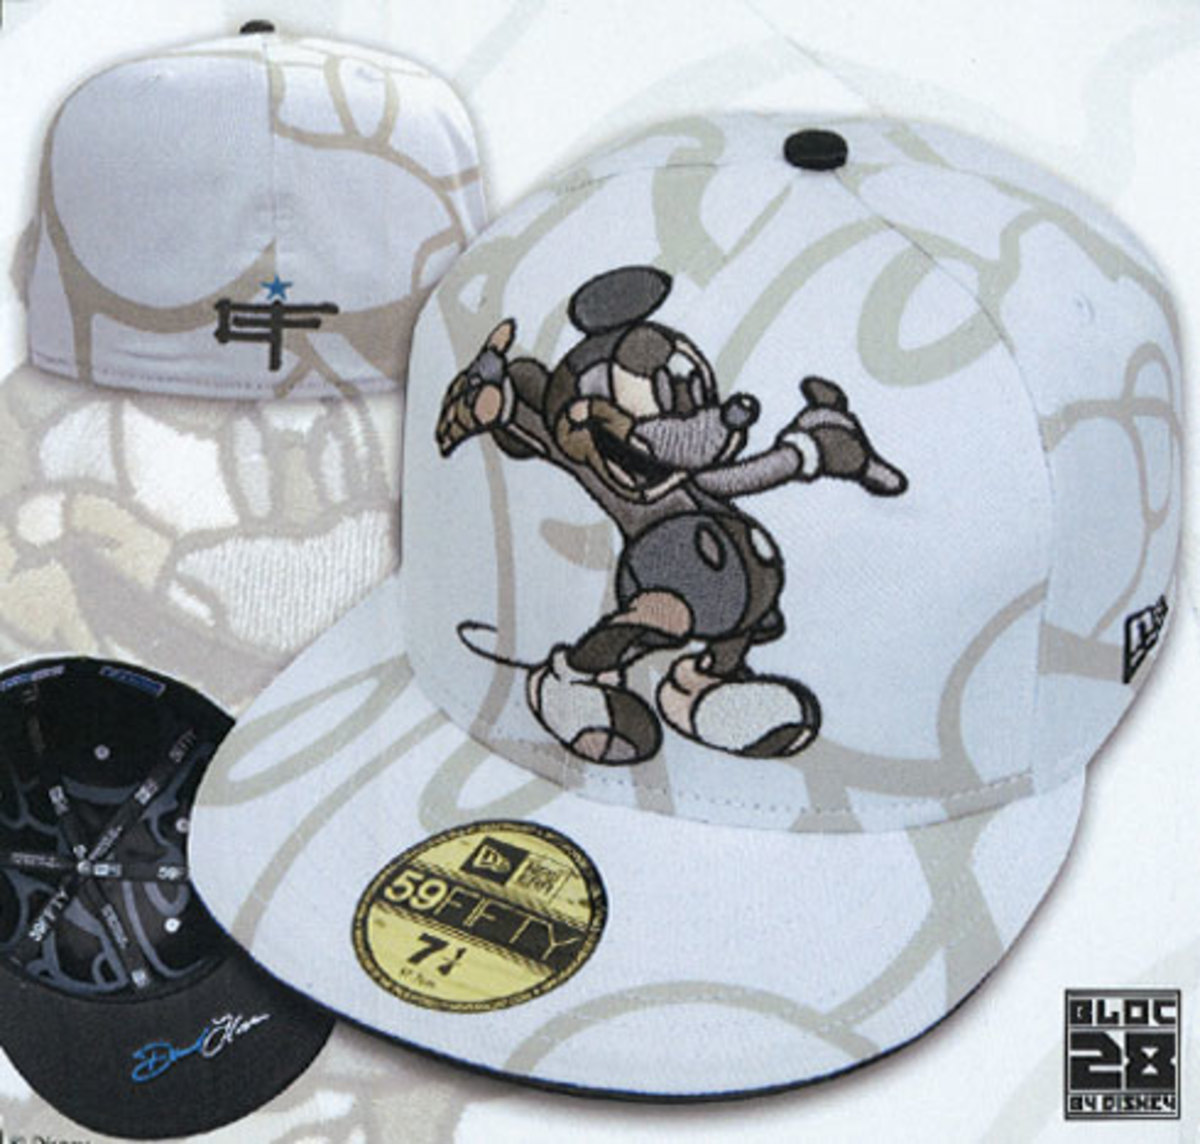 Disney BLOC28 x New Era - 2